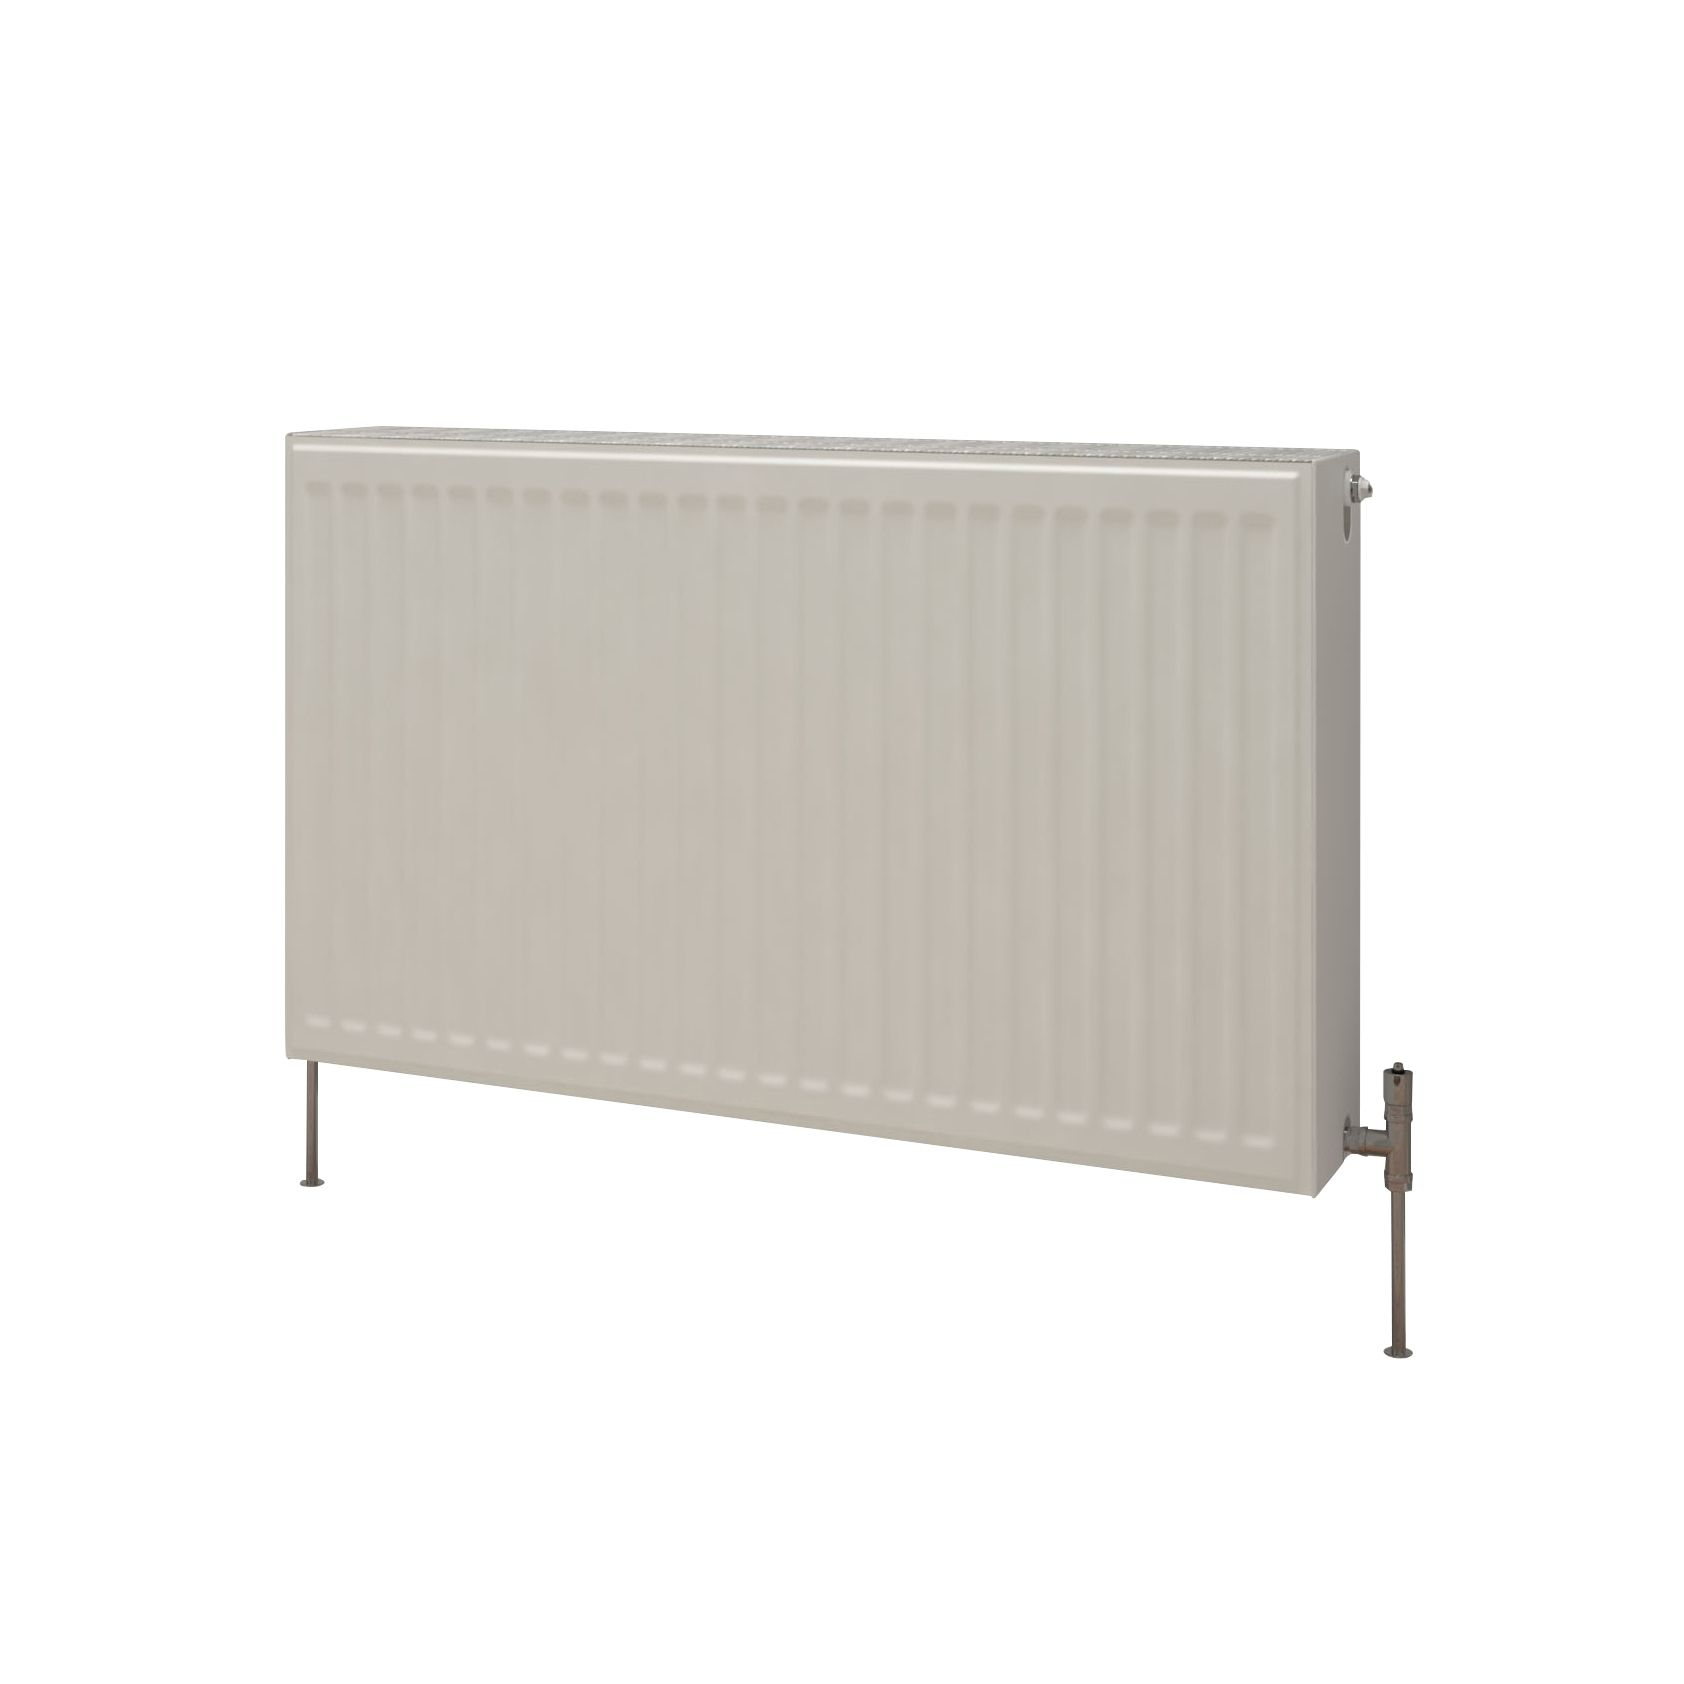 Kudox Premium Double Radiator Gloss (H)400 mm (W)900